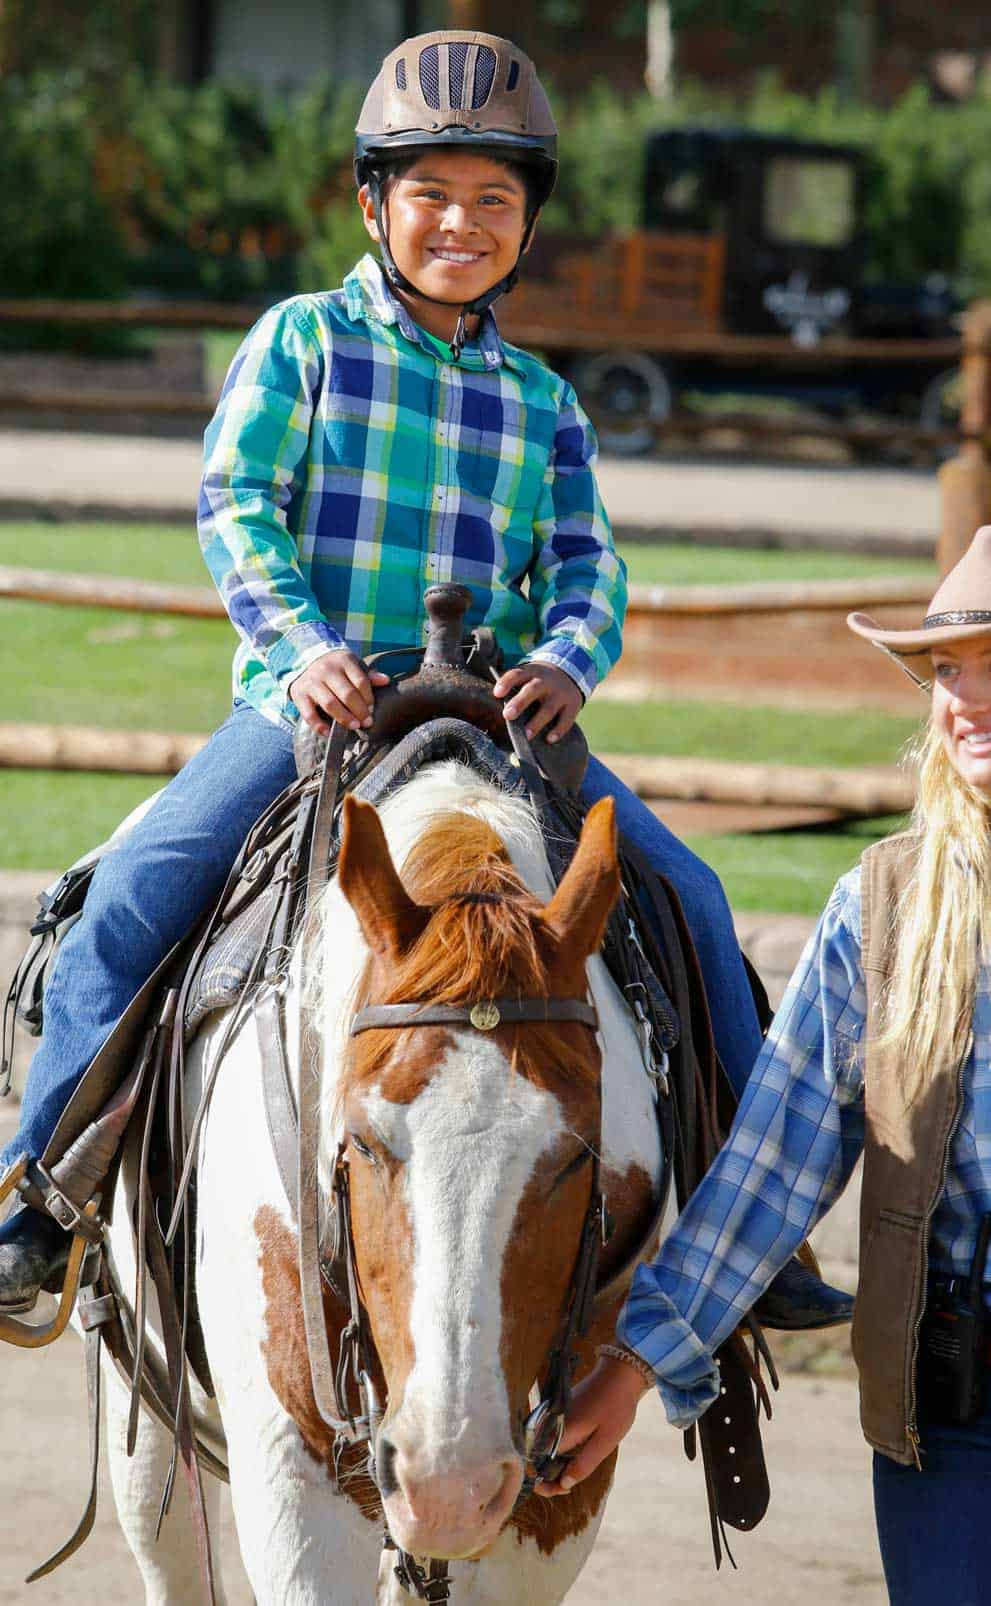 A young boy grins from ear to ear during his pony ride